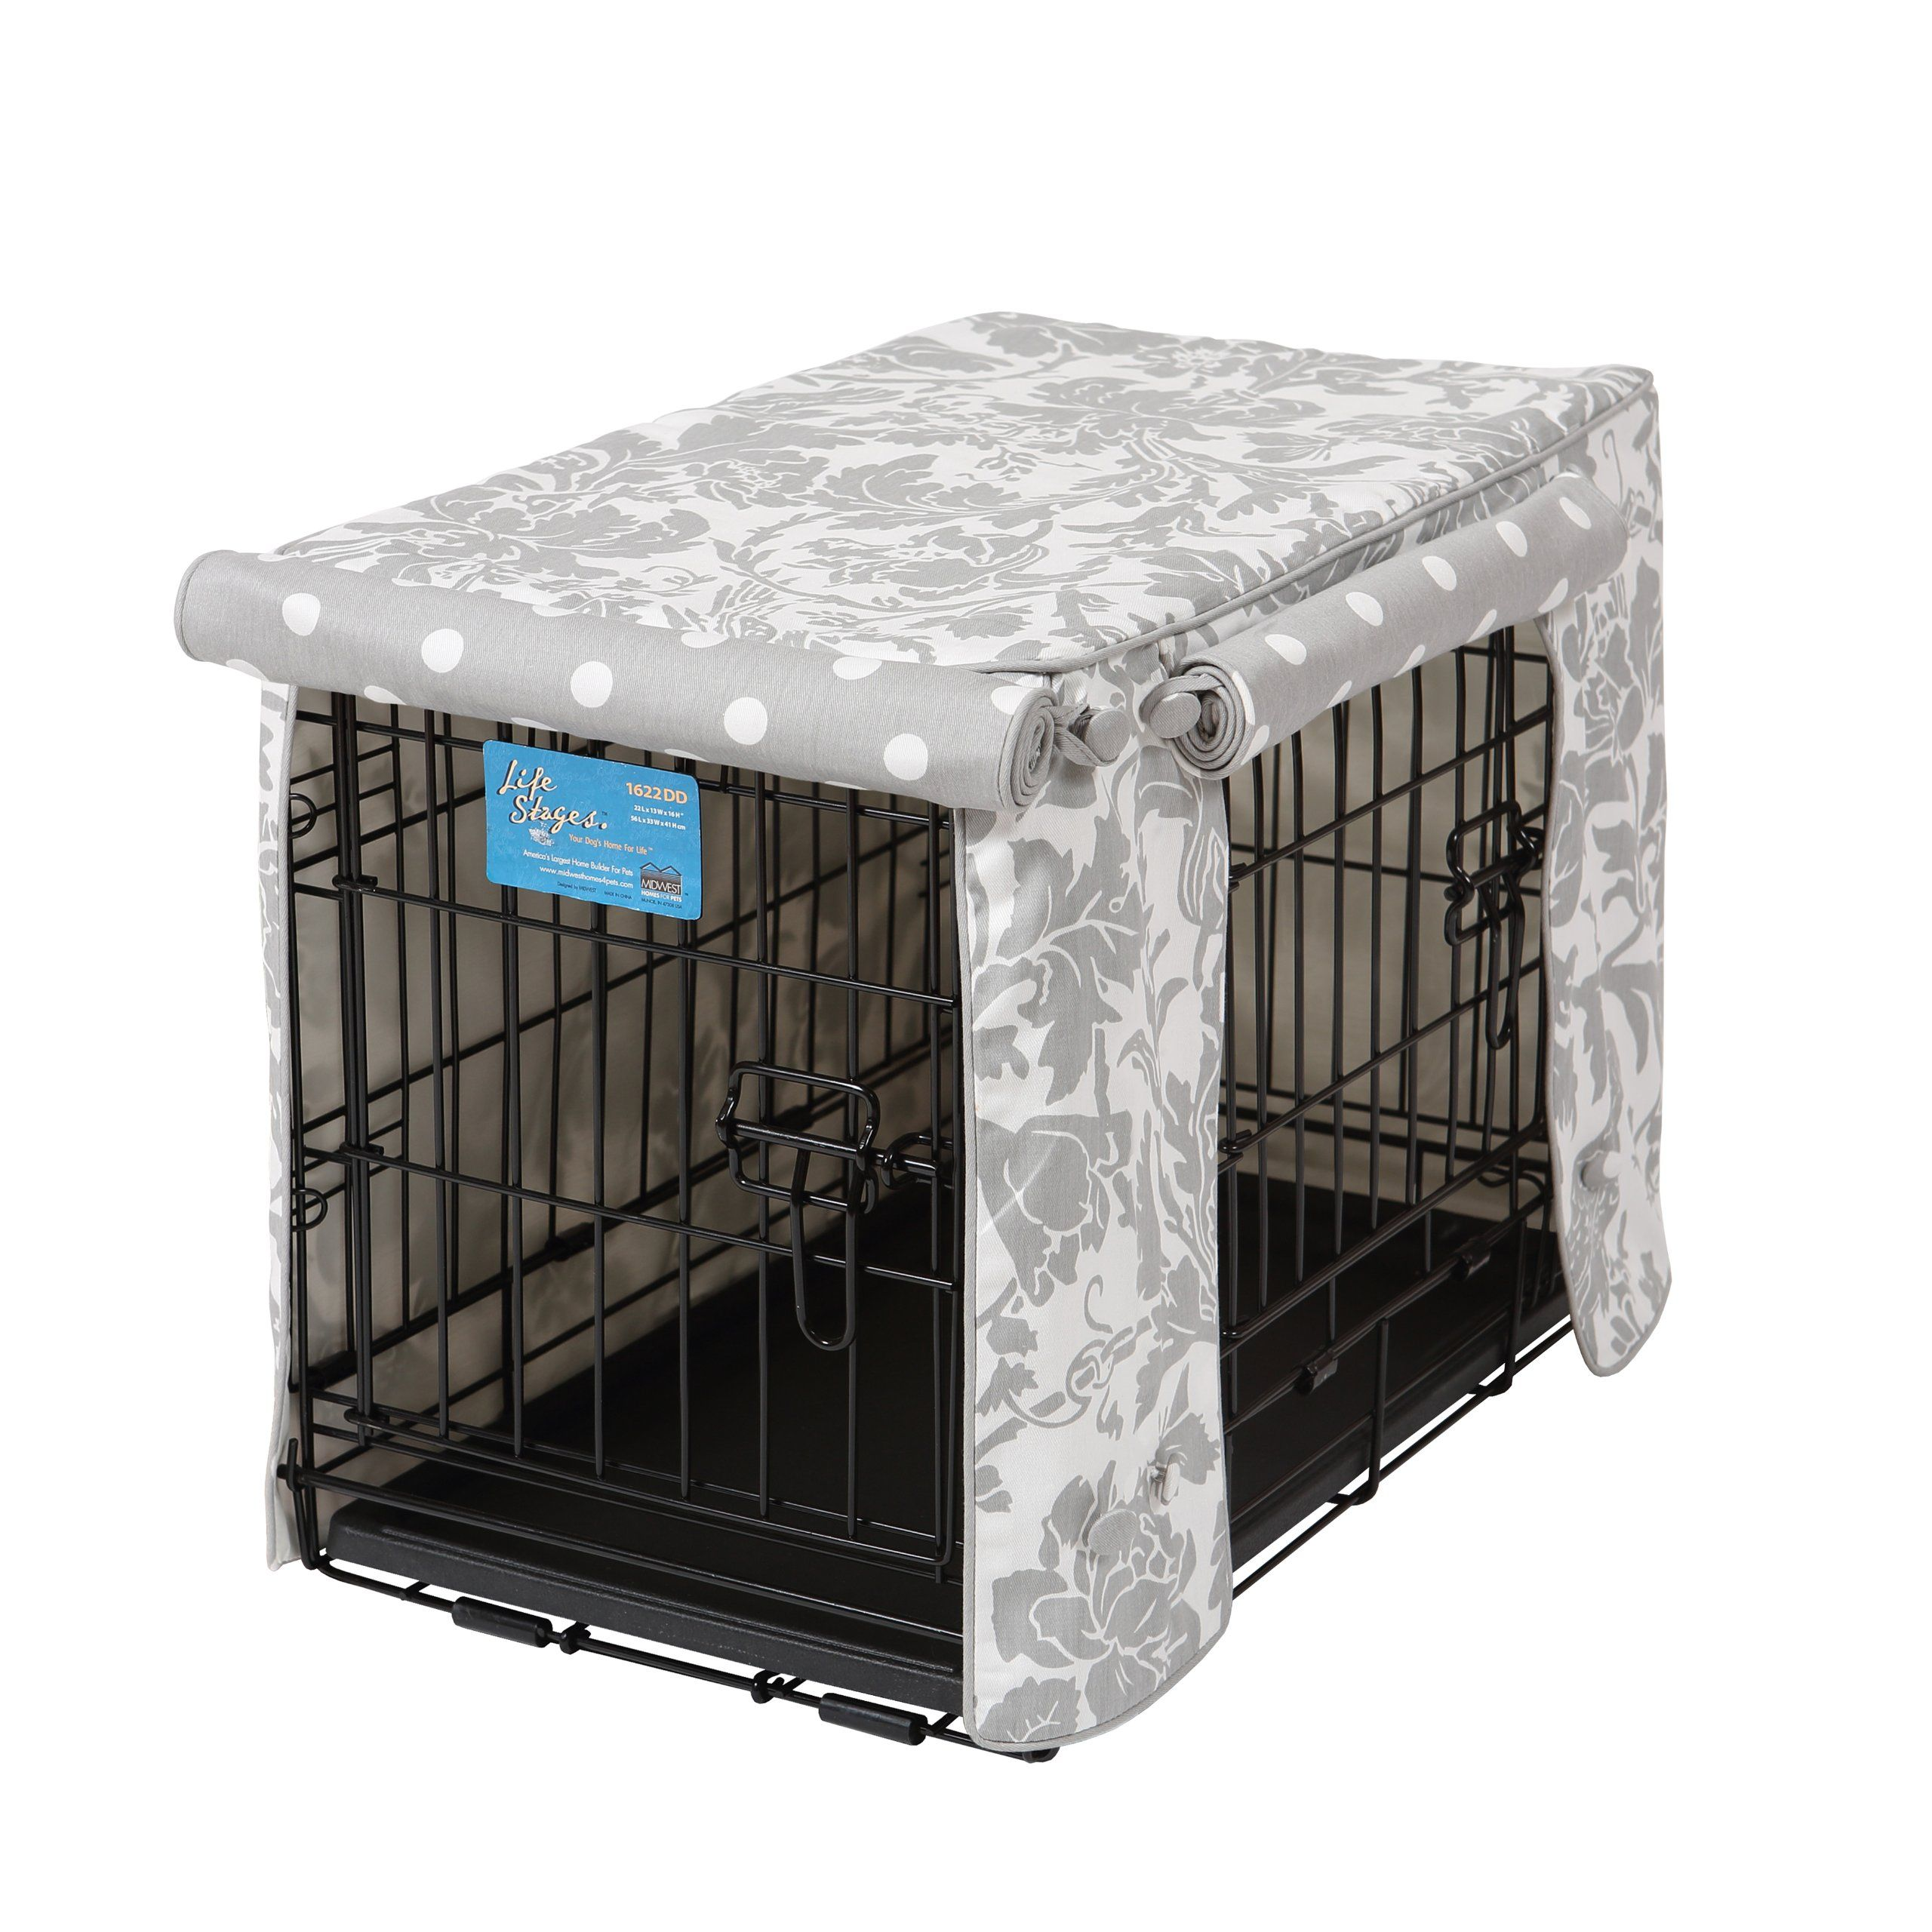 Amazon Com Crate Covers And More Double Door 24 Pet Crate Cover Marbella Storm With Grey Polka Dot Pet Habitat Screen Covers Crate Cover Pet Crate Crates